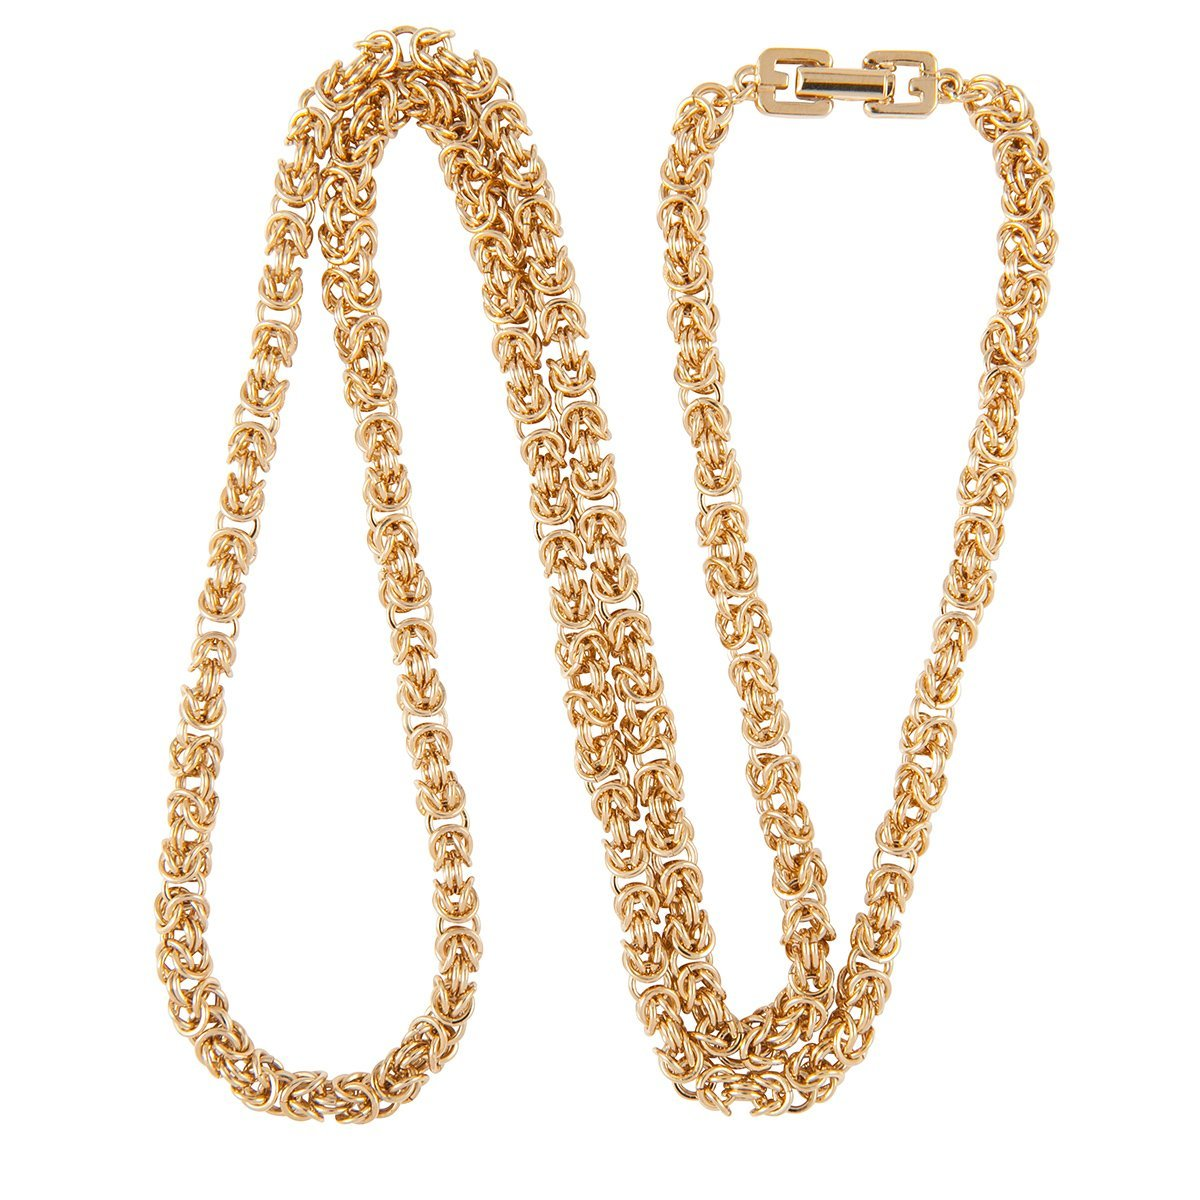 1980S Vintage Givenchy Elegant Chain Necklace